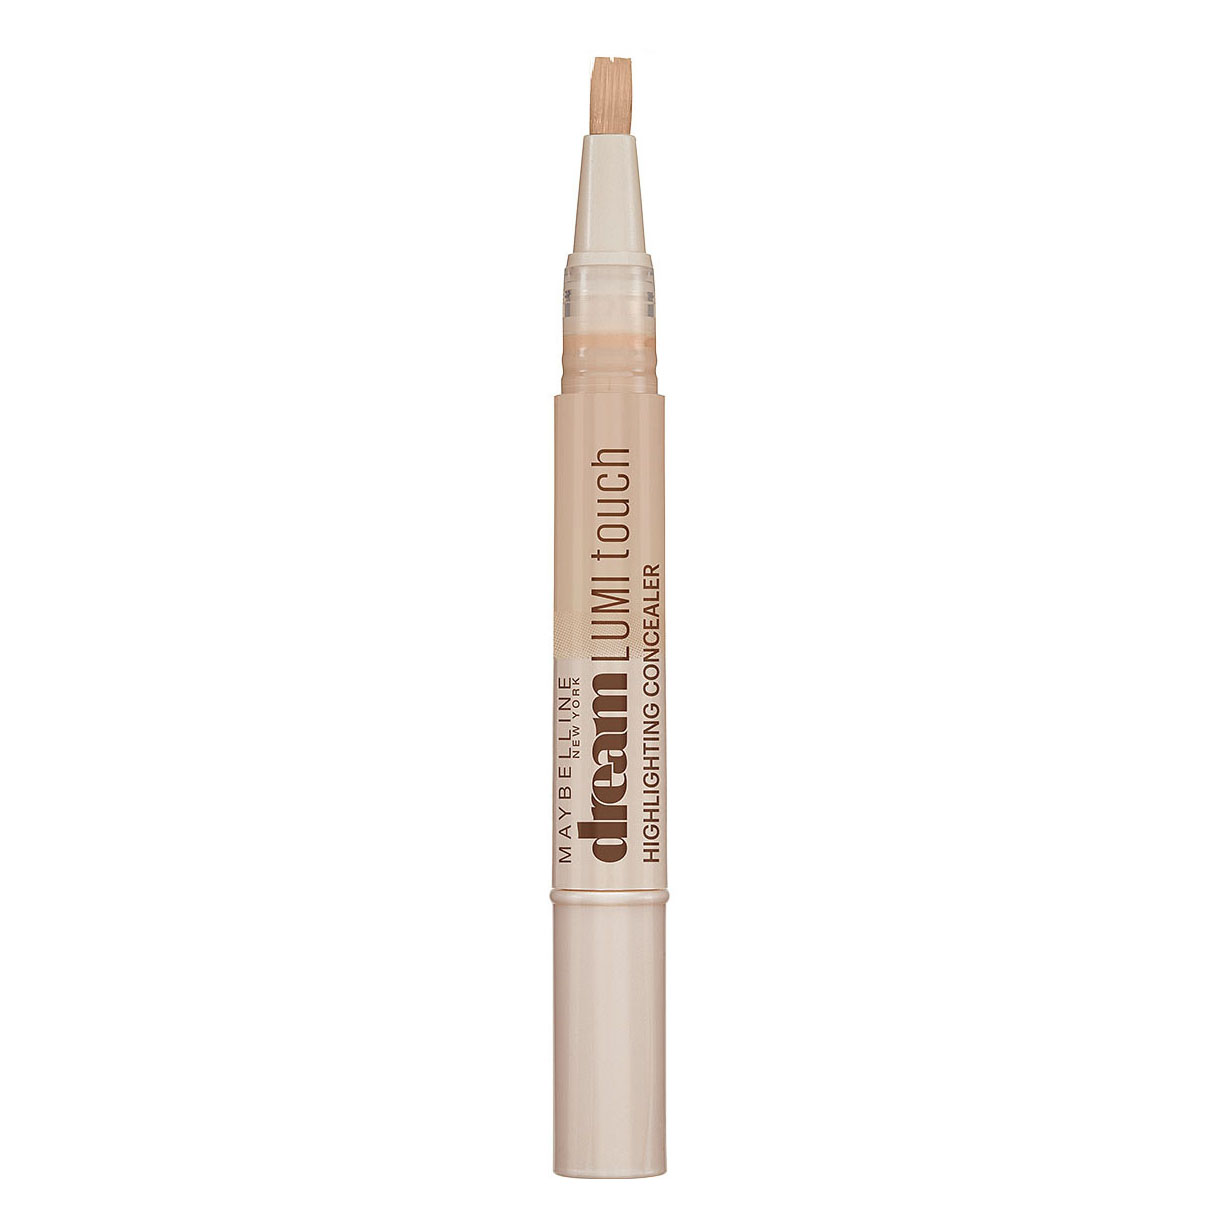 5 Drugstore Dupes For Popular High End Concealers Fabfitfun Nyx Concealer Stick Maybelline Dream Lumi Highlighting 799